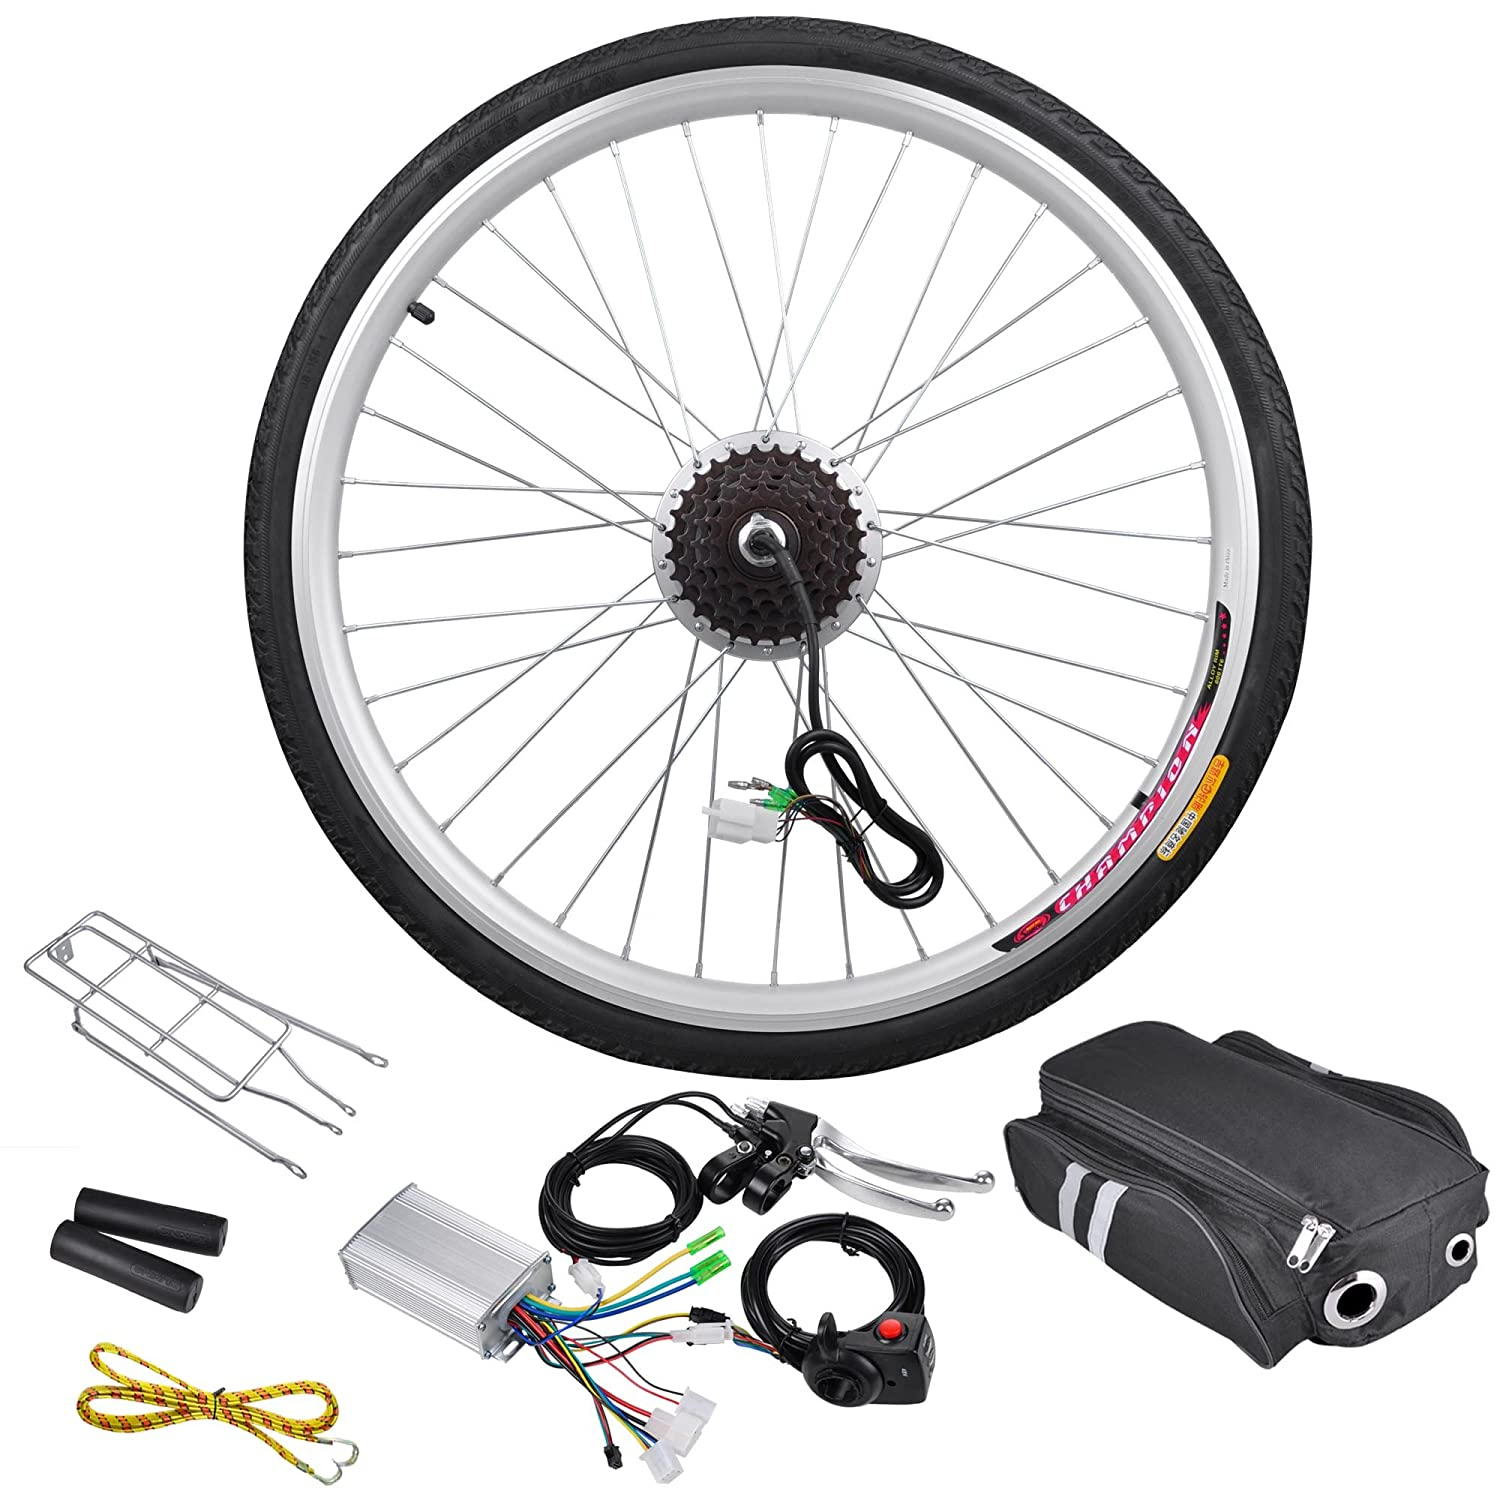 36V250W 26 Front/Rear Wheel Electric Bicycle Small Motor Cycling Conversion Kit 4mm 7x19 grade 304 high tensile structure core stainless steel wire rope cable wick high quality wick diy